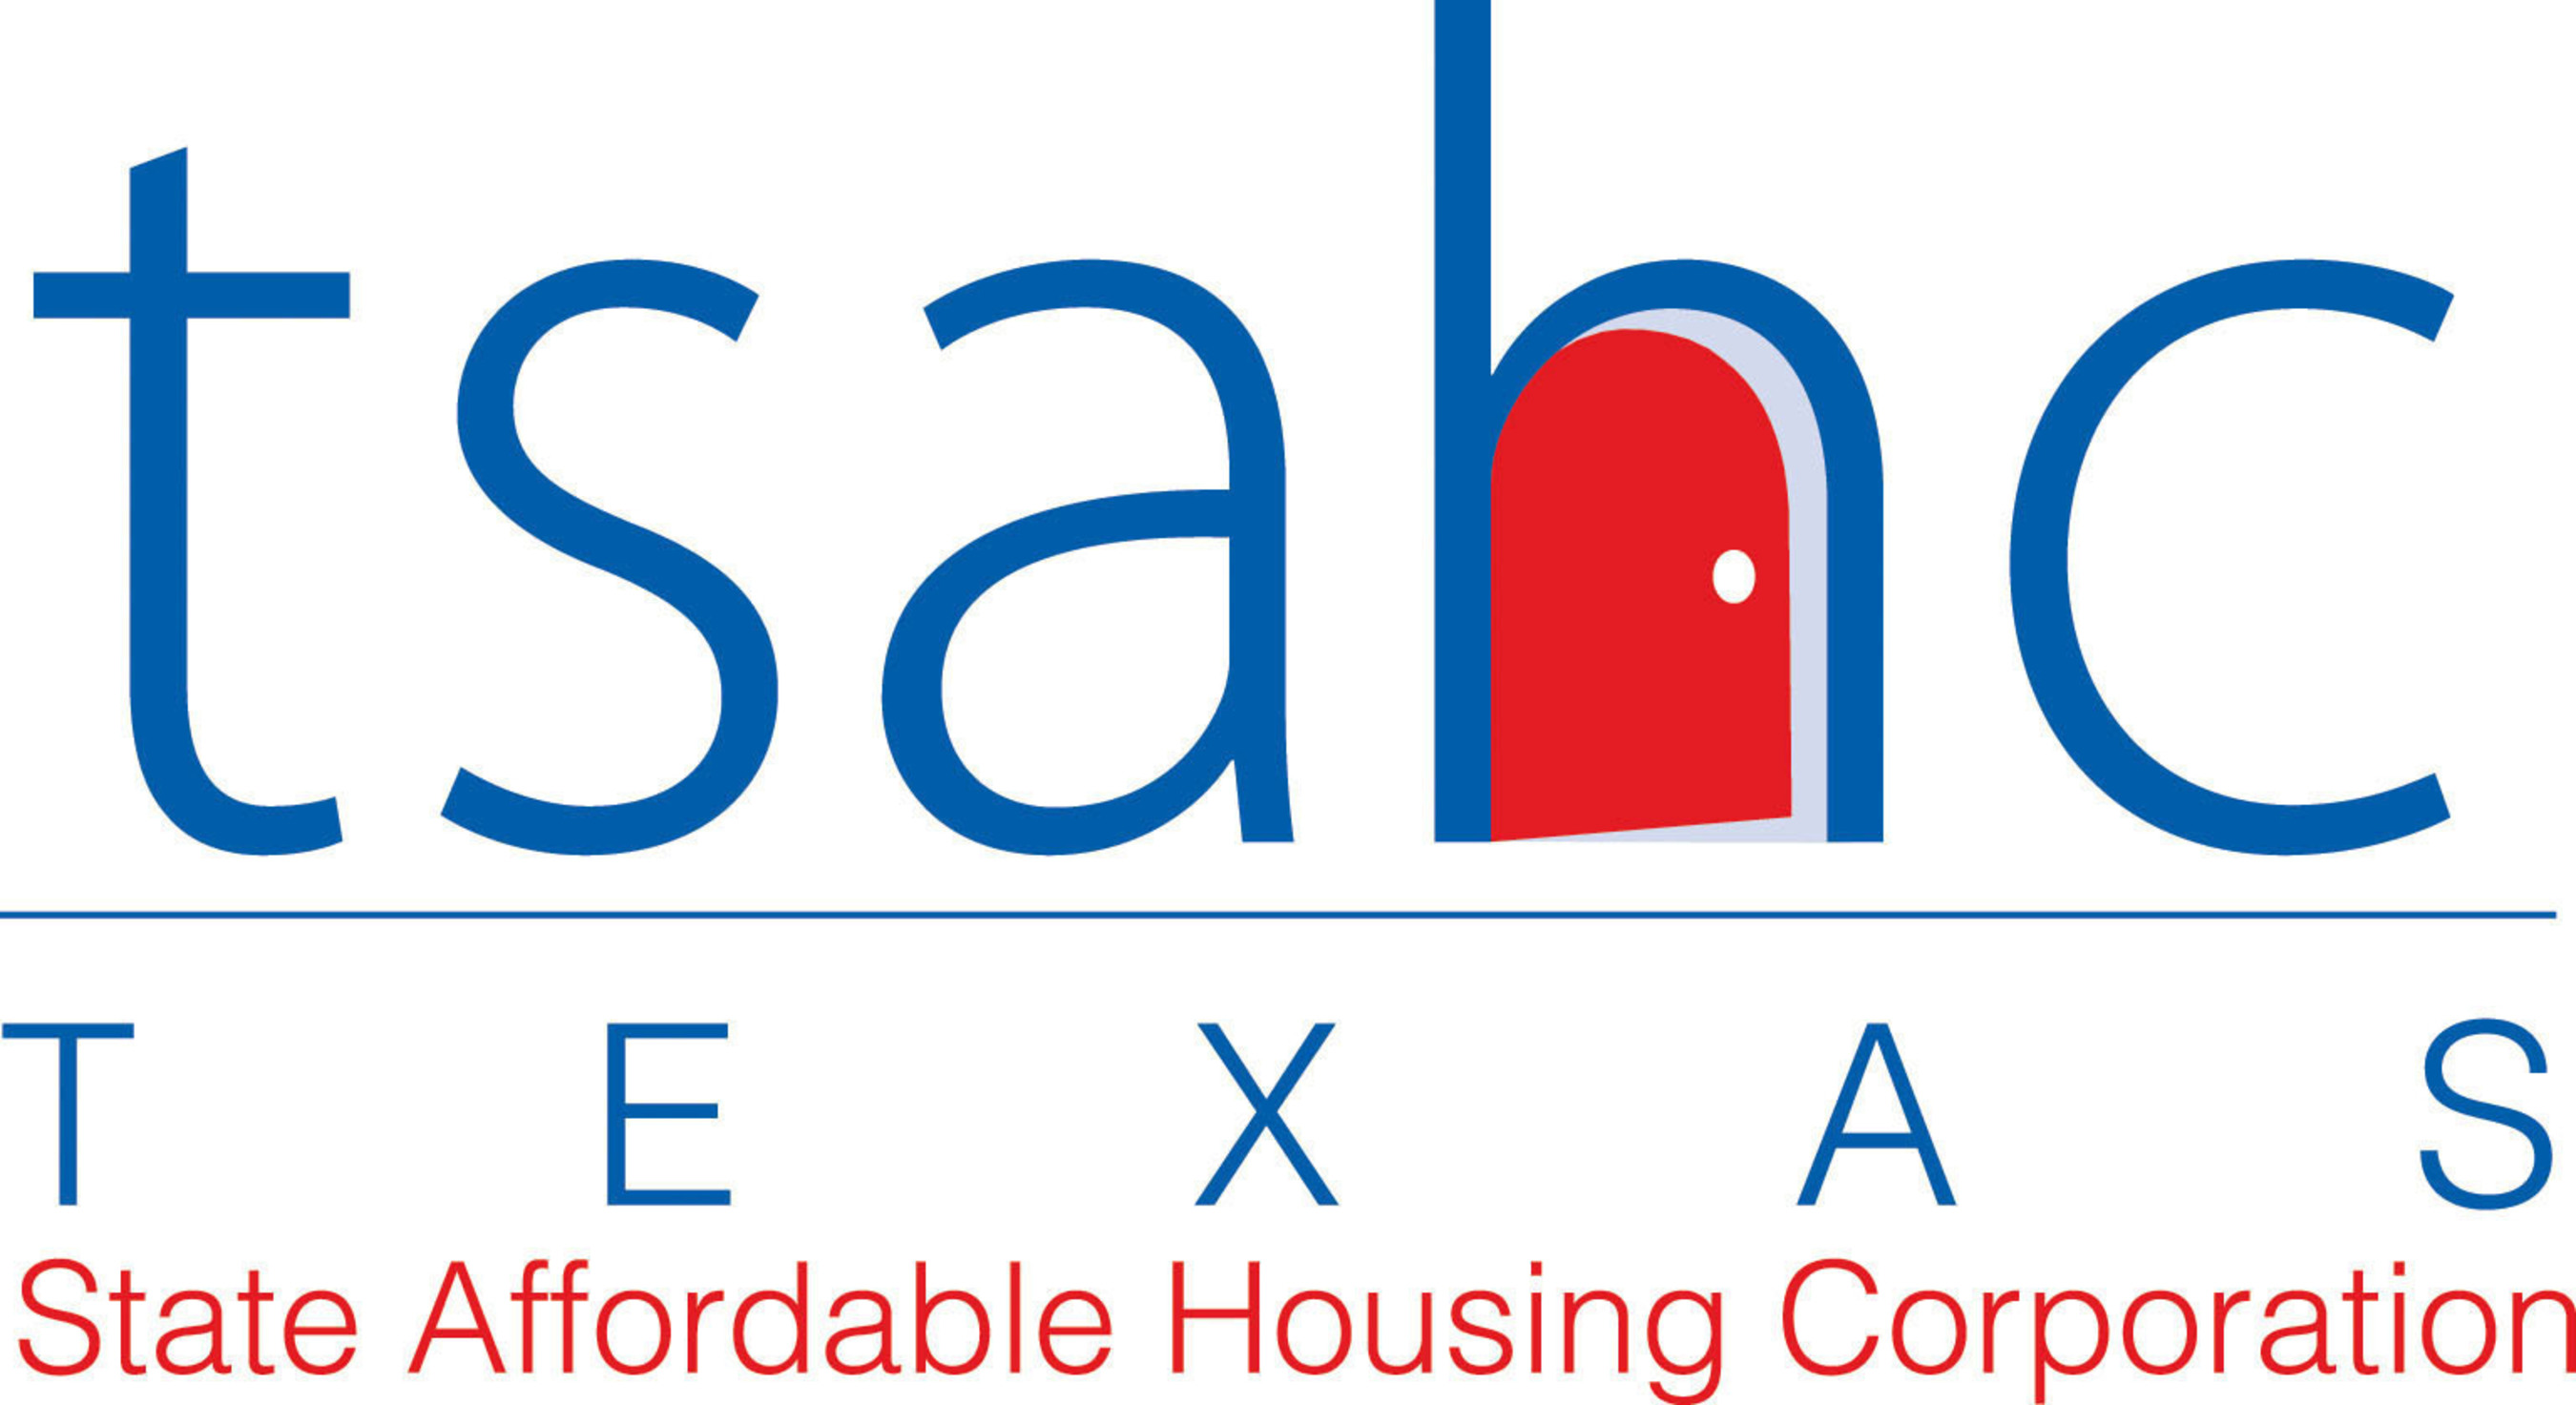 Logo of Texas State Affordable Housing Corporation.